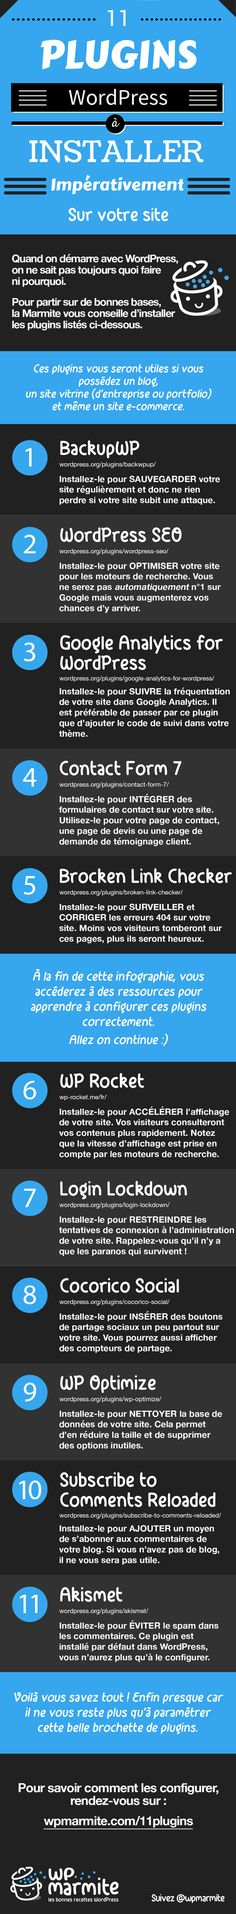 Infographie des meilleurs plugins WordPress More tips available on www.nl FREE WP plugin that gives you instant content and authority to your websites. Never run out of fresh content for your sites no matter what niche you are in!